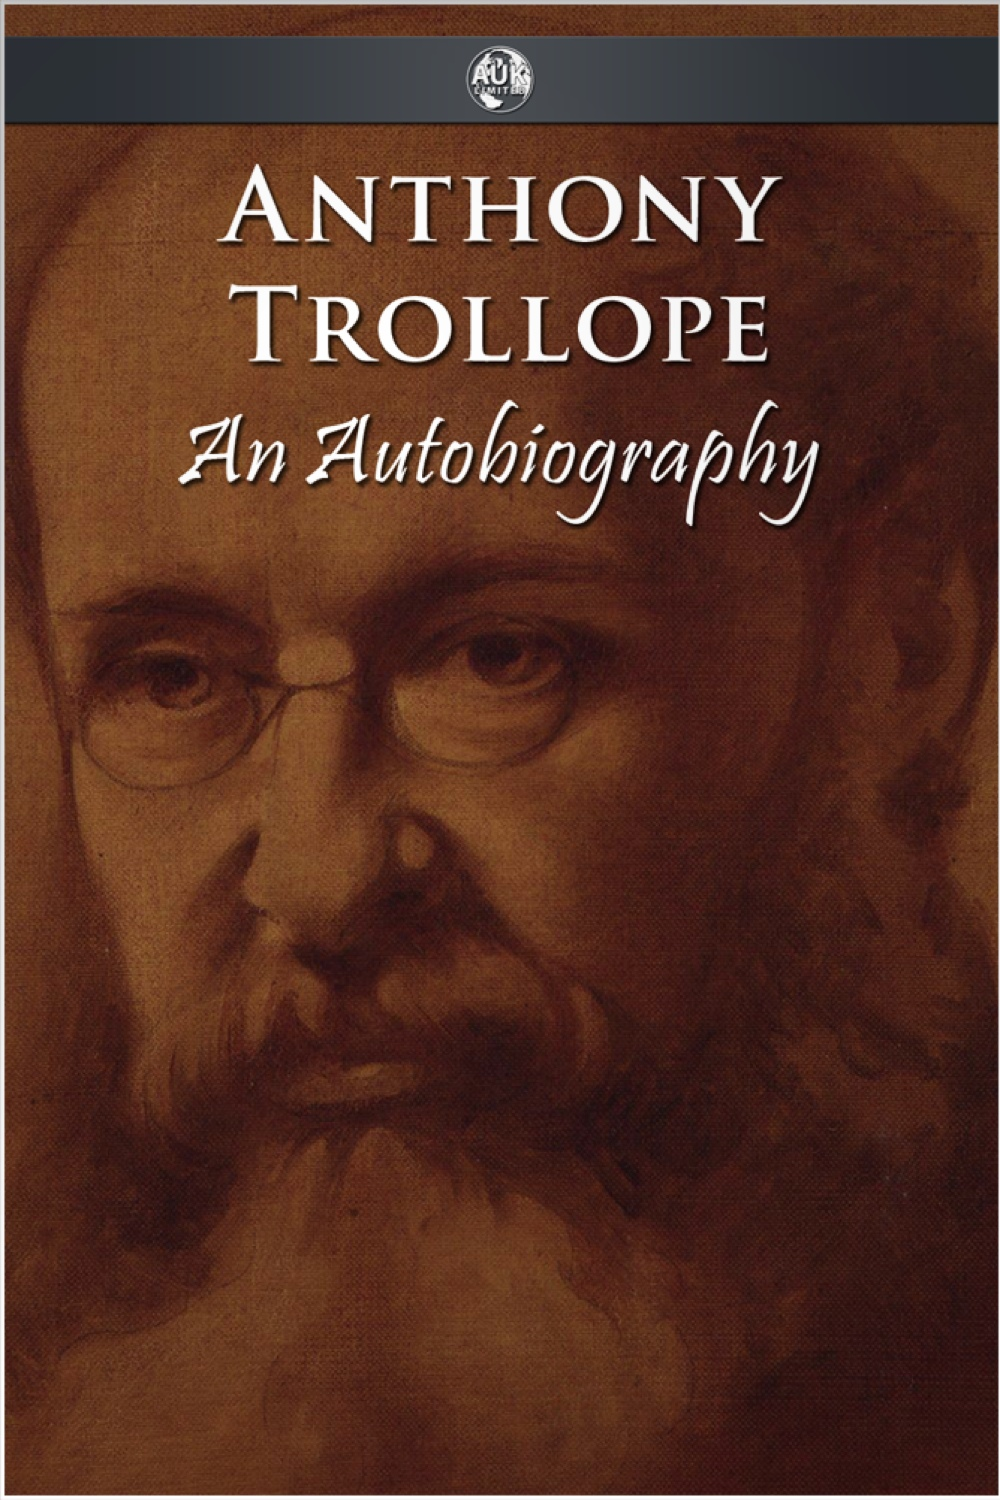 Anthony Trollope - An Autobiography By: Anthony Trollope